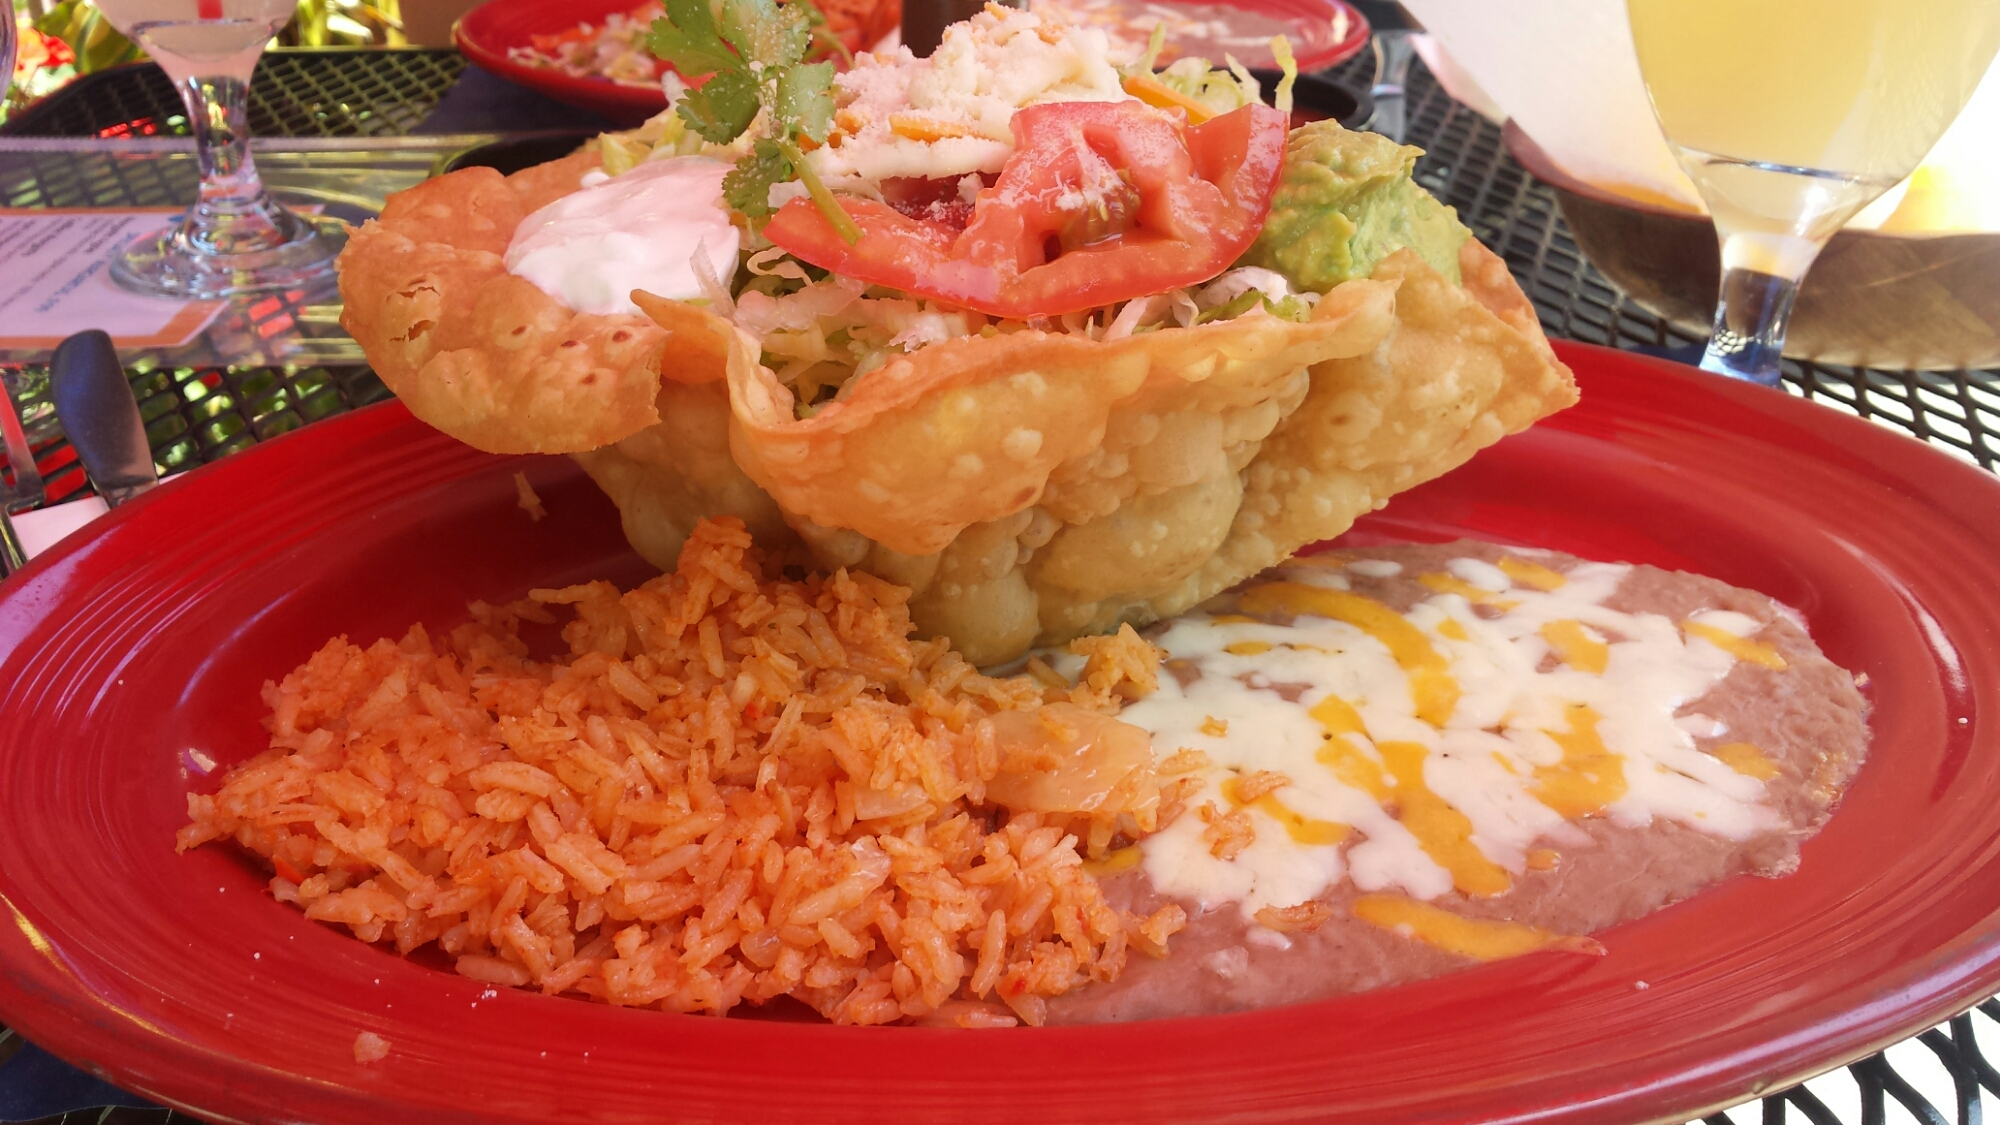 Chicken Tostada with Rice and Beans